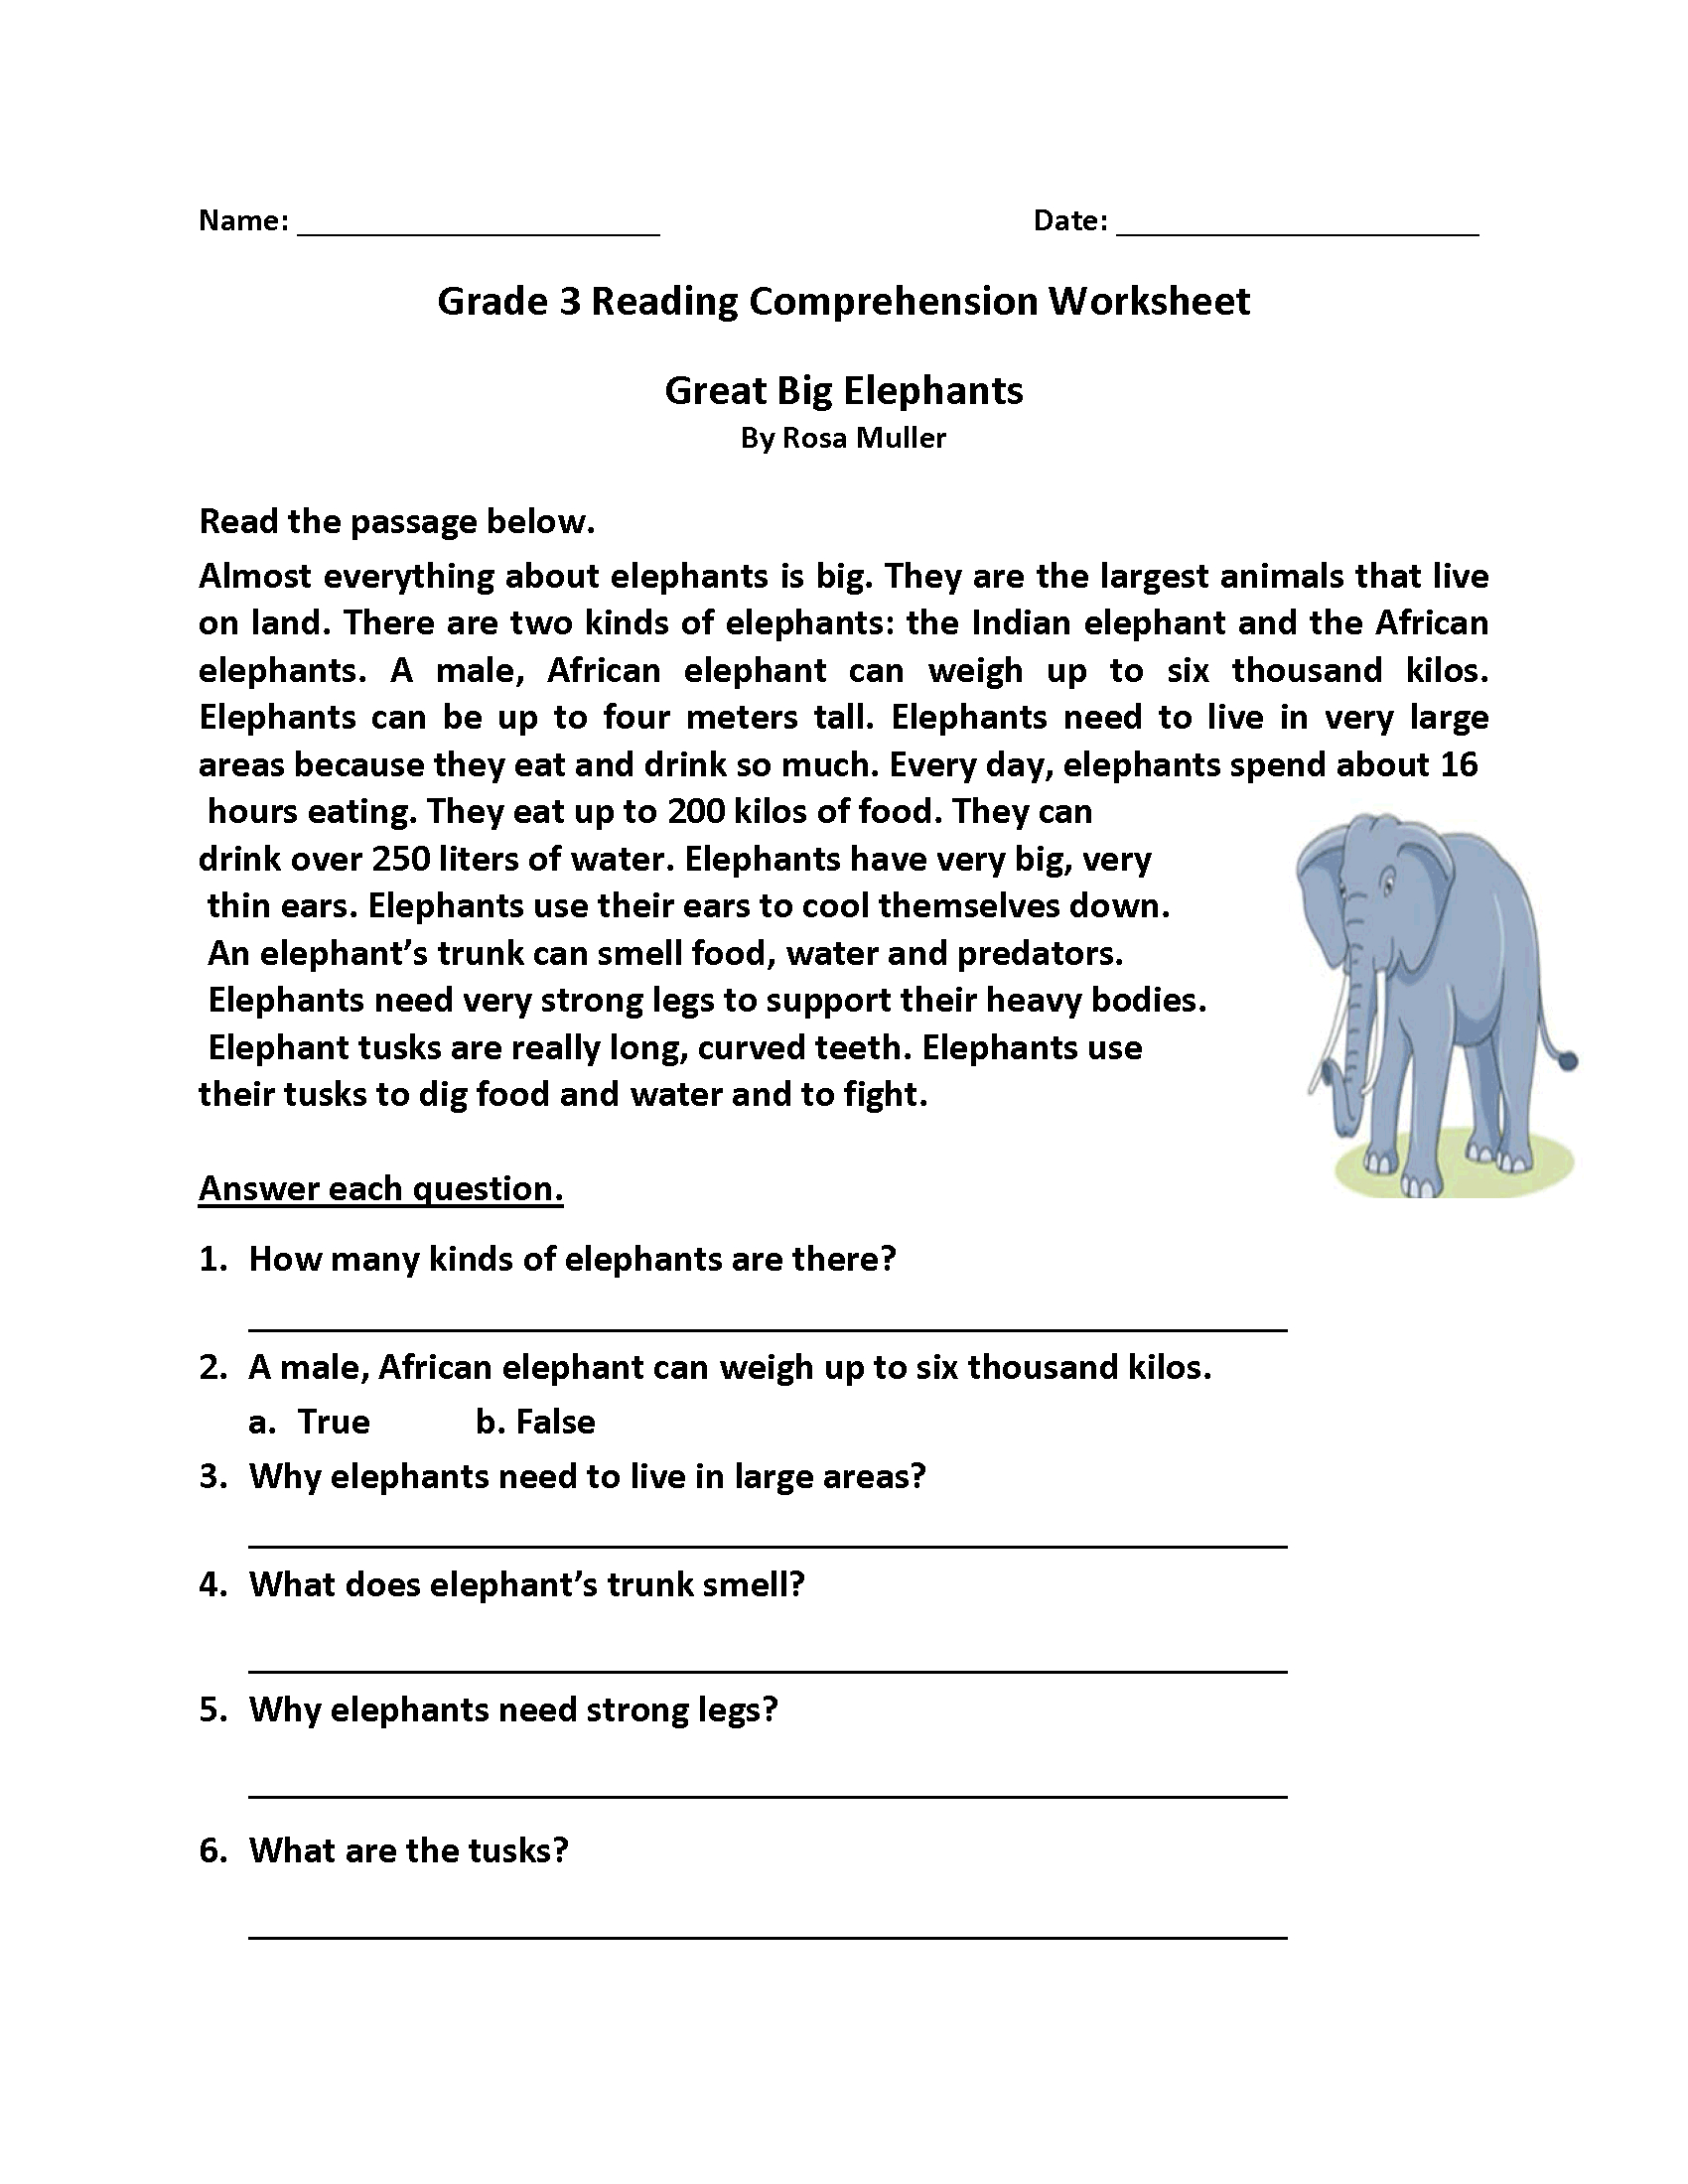 Homework Sheets Grade 3 Reading | Learning Printable | Reading | Printable Comprehension Worksheets For Grade 3